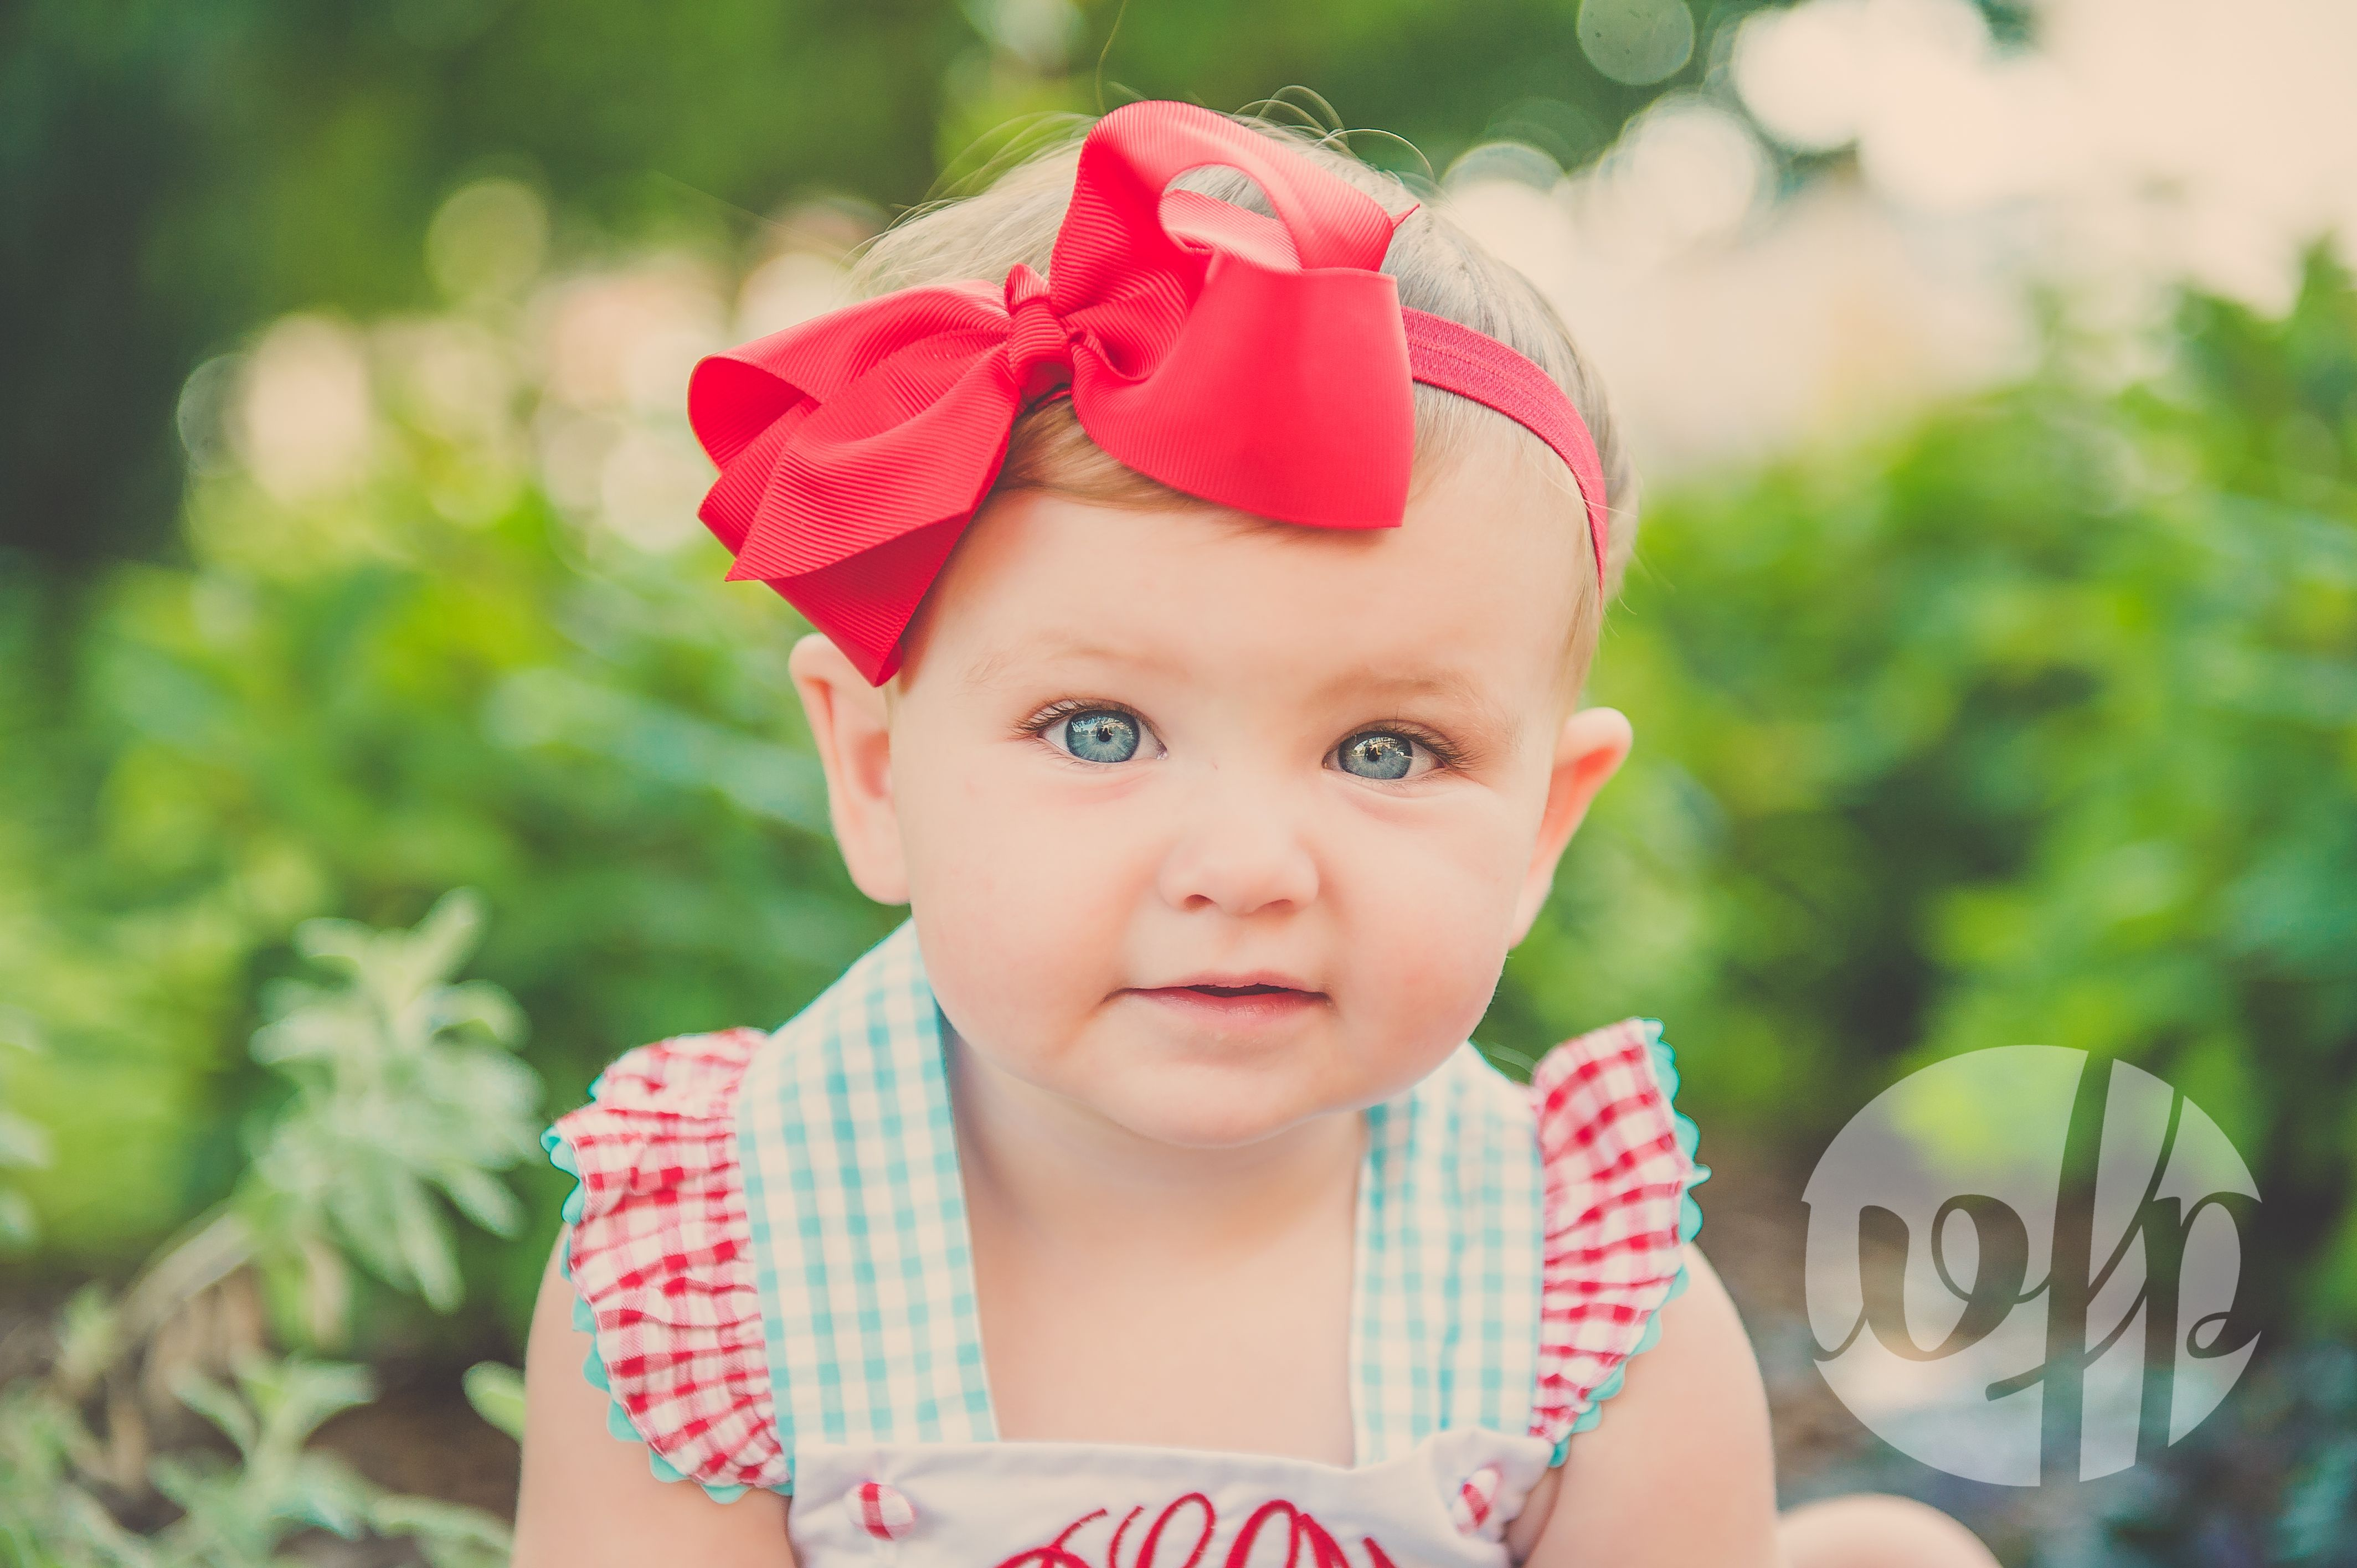 Pink and gingham to celebrate this sweet little girl. Taken downtown Fayetteville, Arkansas. Children and family photographs by Whitney Flora Photography.